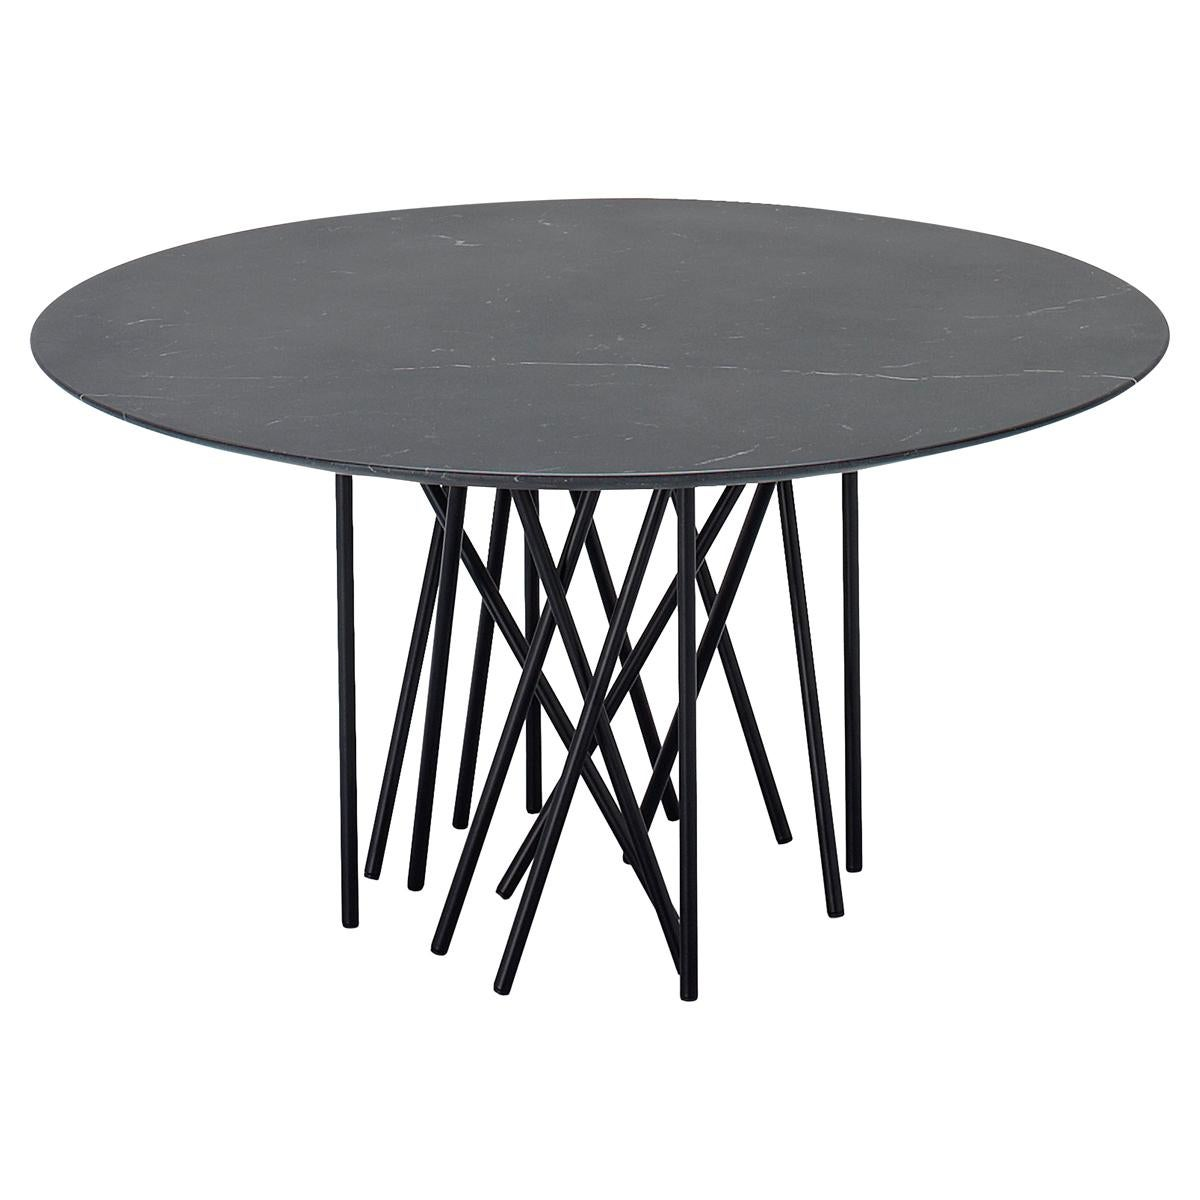 Arflex Octopus 80cm Table in Marquinia Marble with Black Base by Carlo Colombo